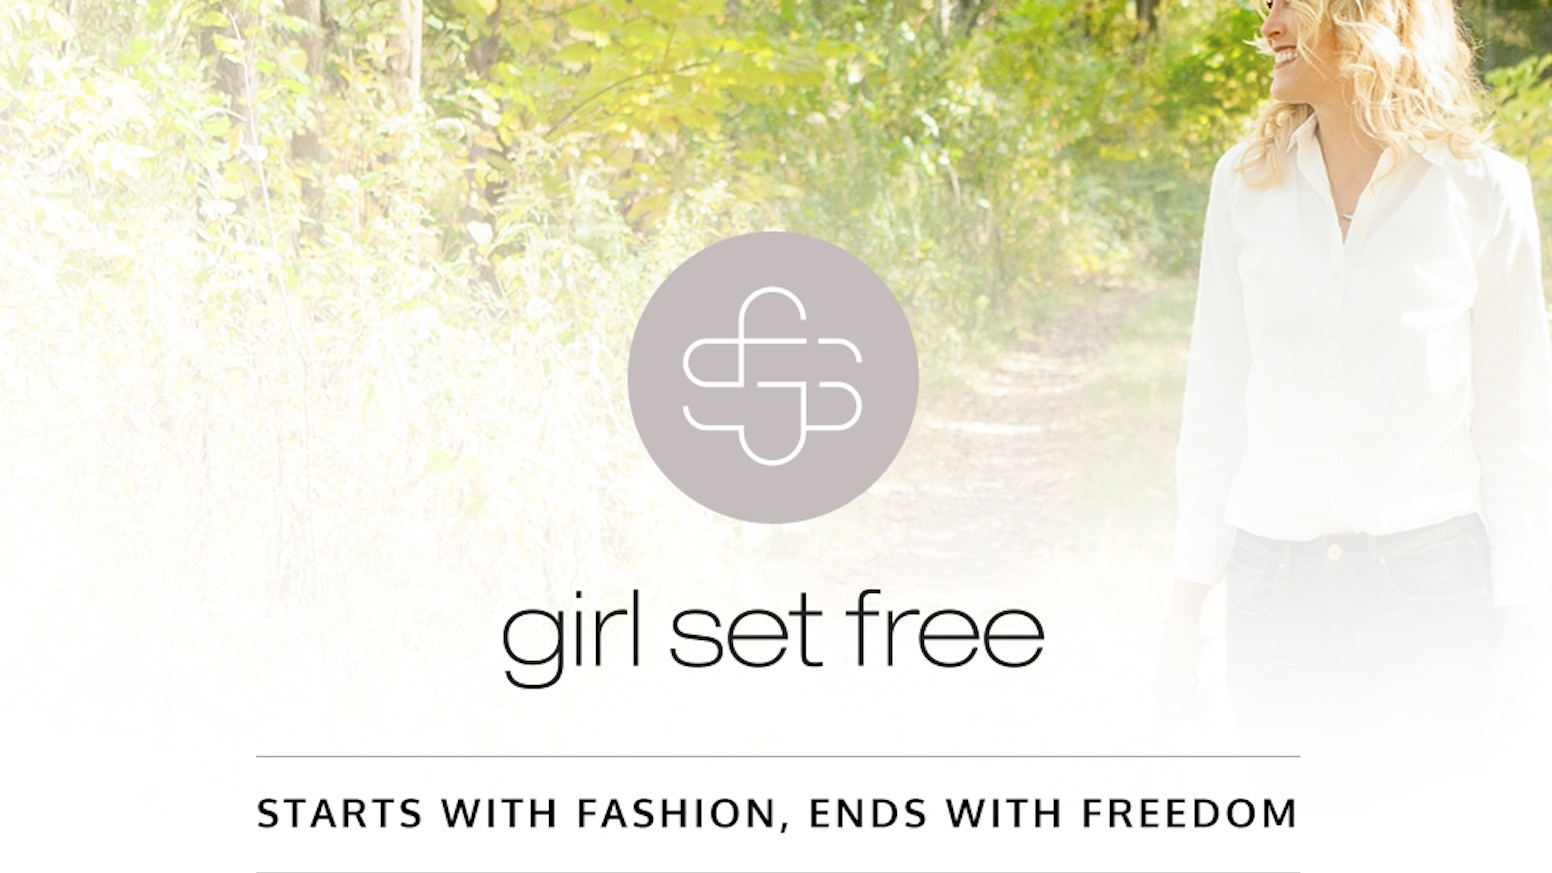 Thank you to all our backers for supporting Girl Set Free! Just finding us, we would love if you would journey with us. We are an ethical fashion brand developing artisan businesses through fair trade to empower survivors of injustice.